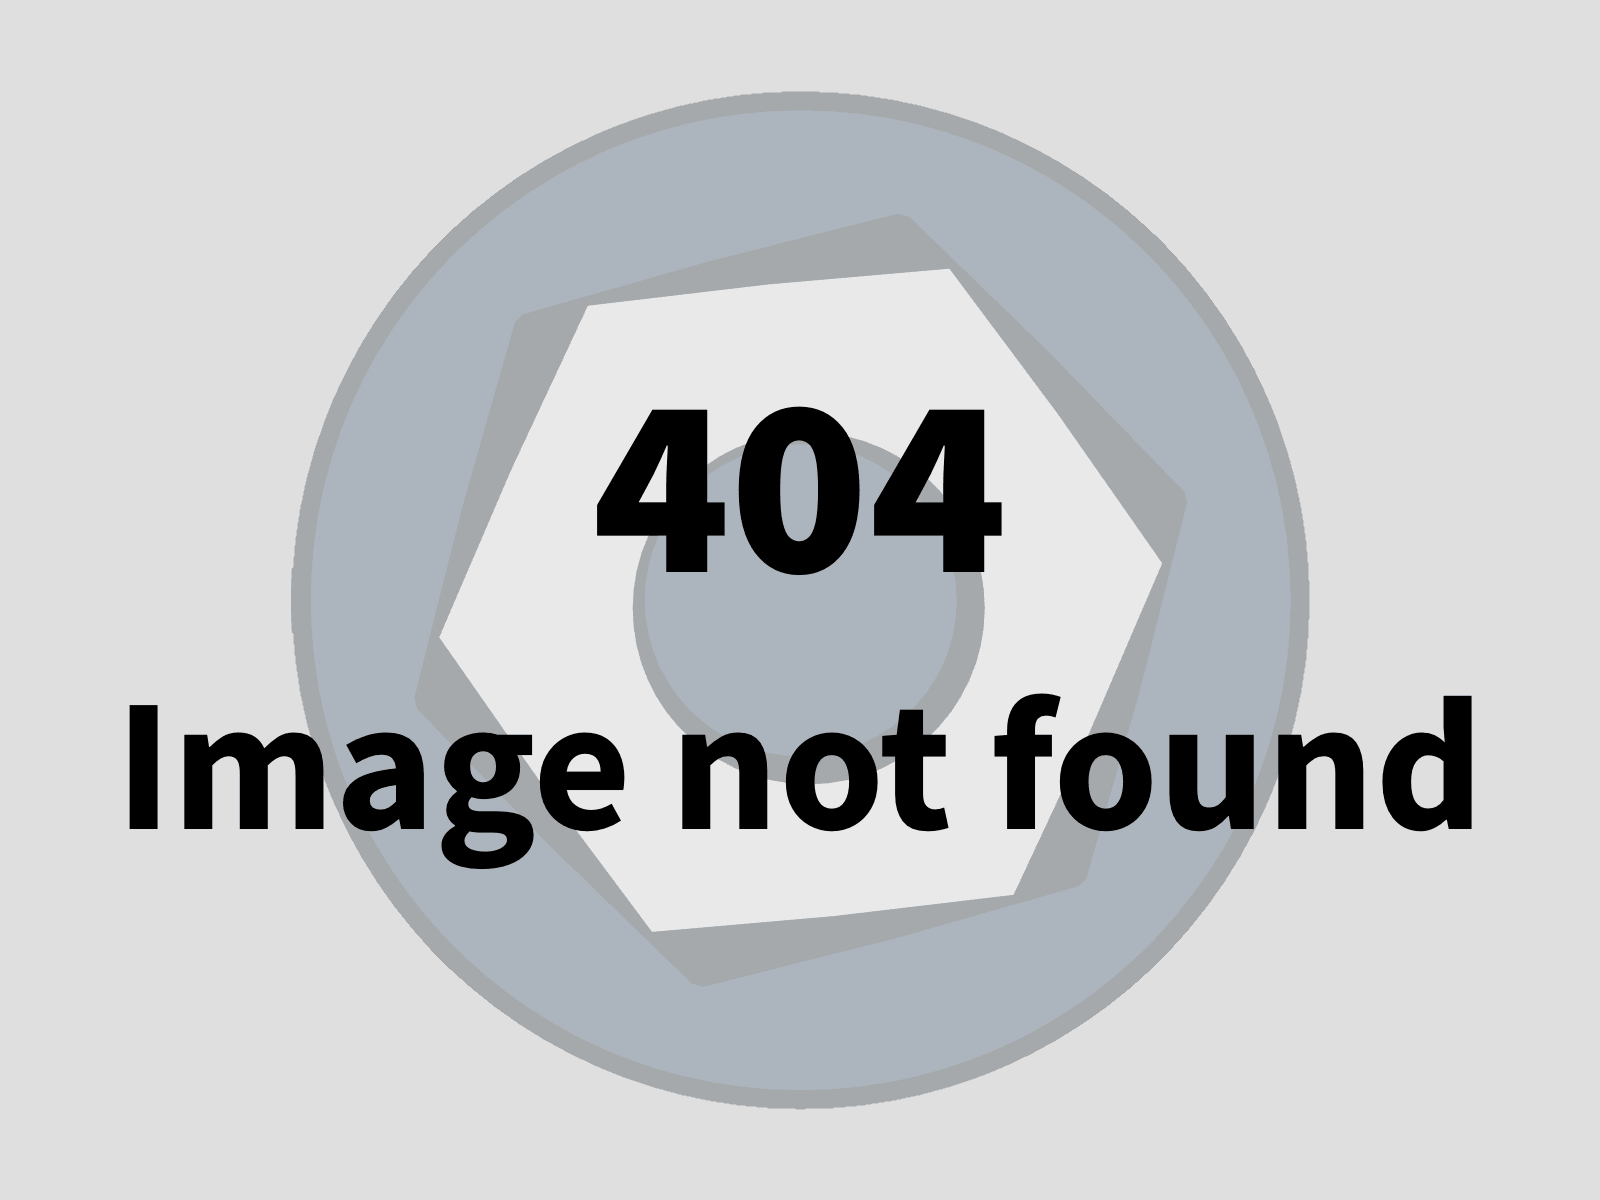 1603460584_Share-of-Energy-from-renewable-sources-in-the-EU-Members-States.png